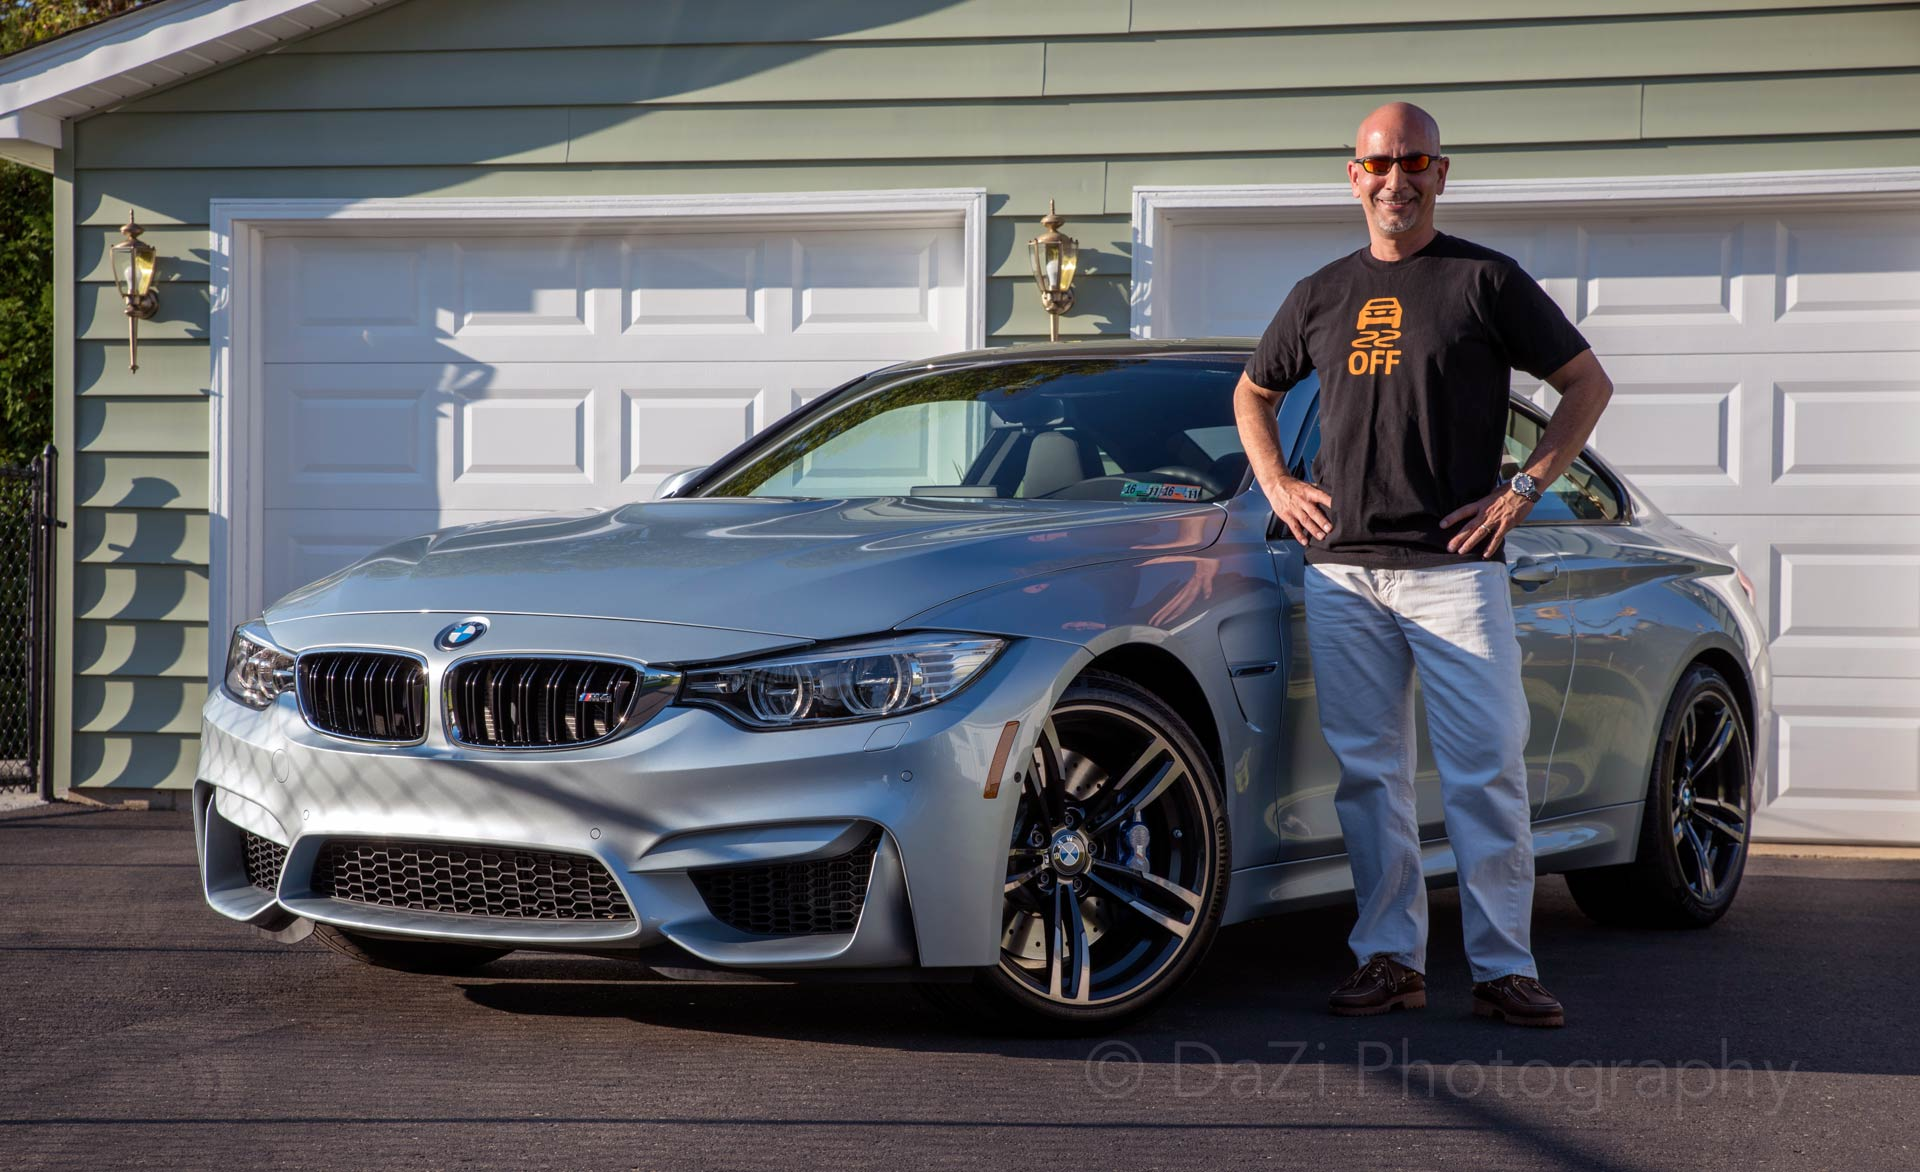 Danny with his Silverstone M4